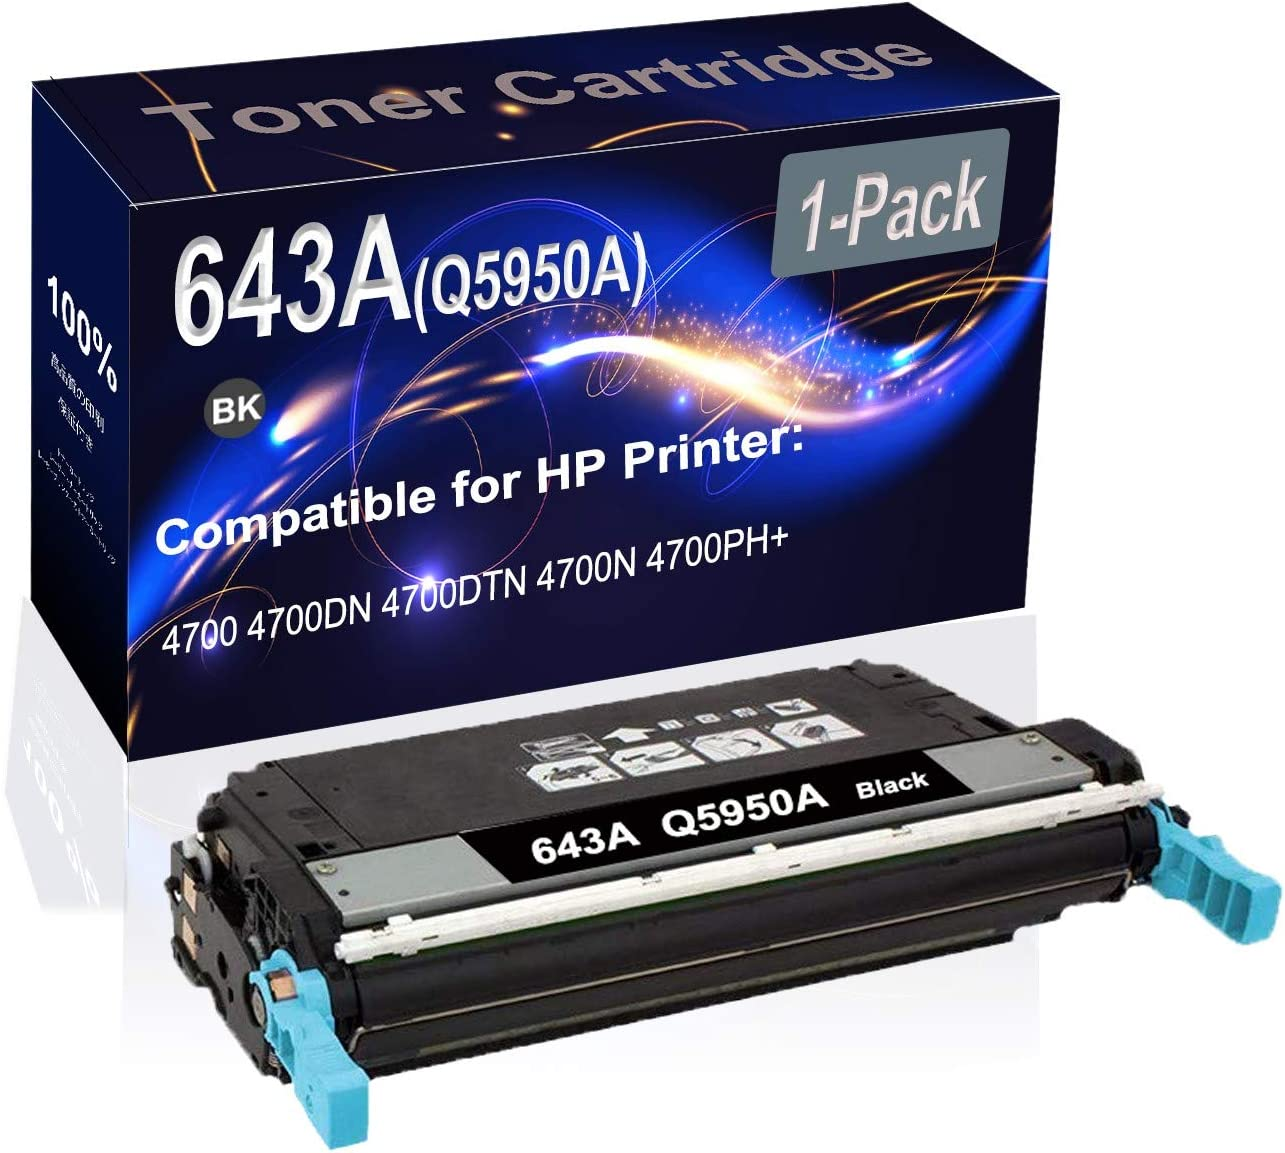 1-Pack (Black) Compatible High Yield 643A (Q5950A) Printer Toner Cartridge use for HP 4700 4700DN Printers